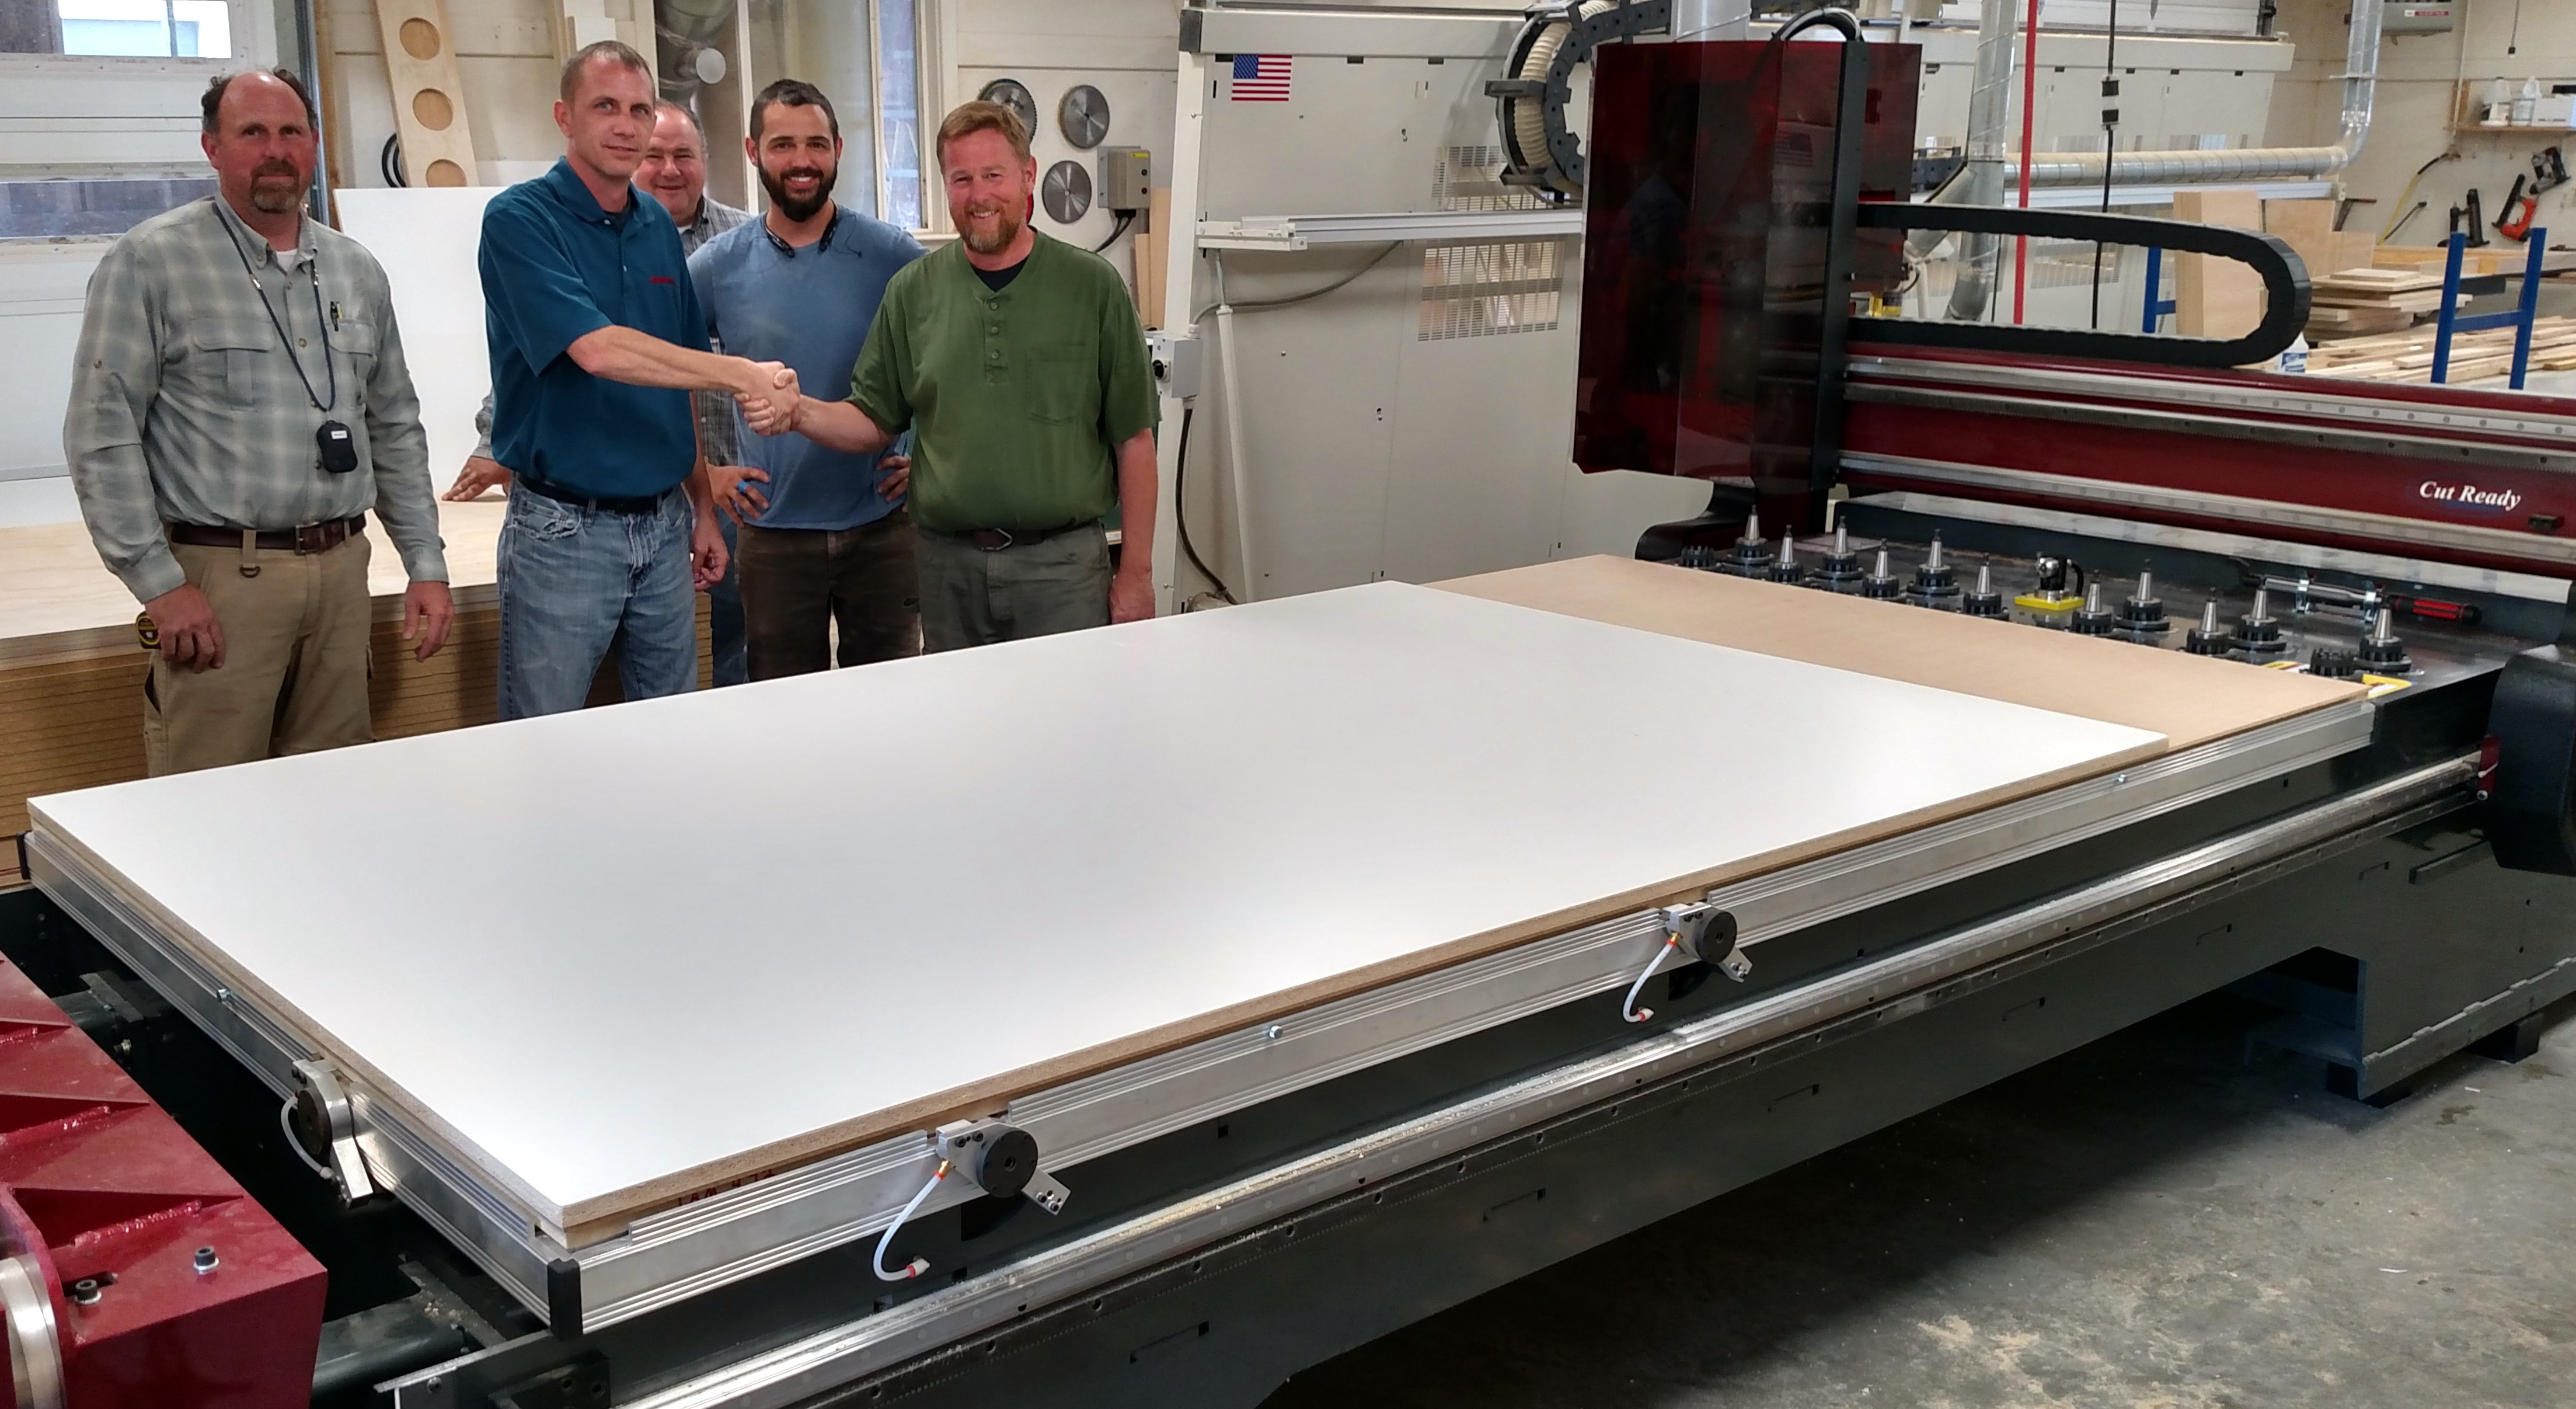 Jody Wilmes and the guys at Original Woodworking with their new Thermwood Cut Center